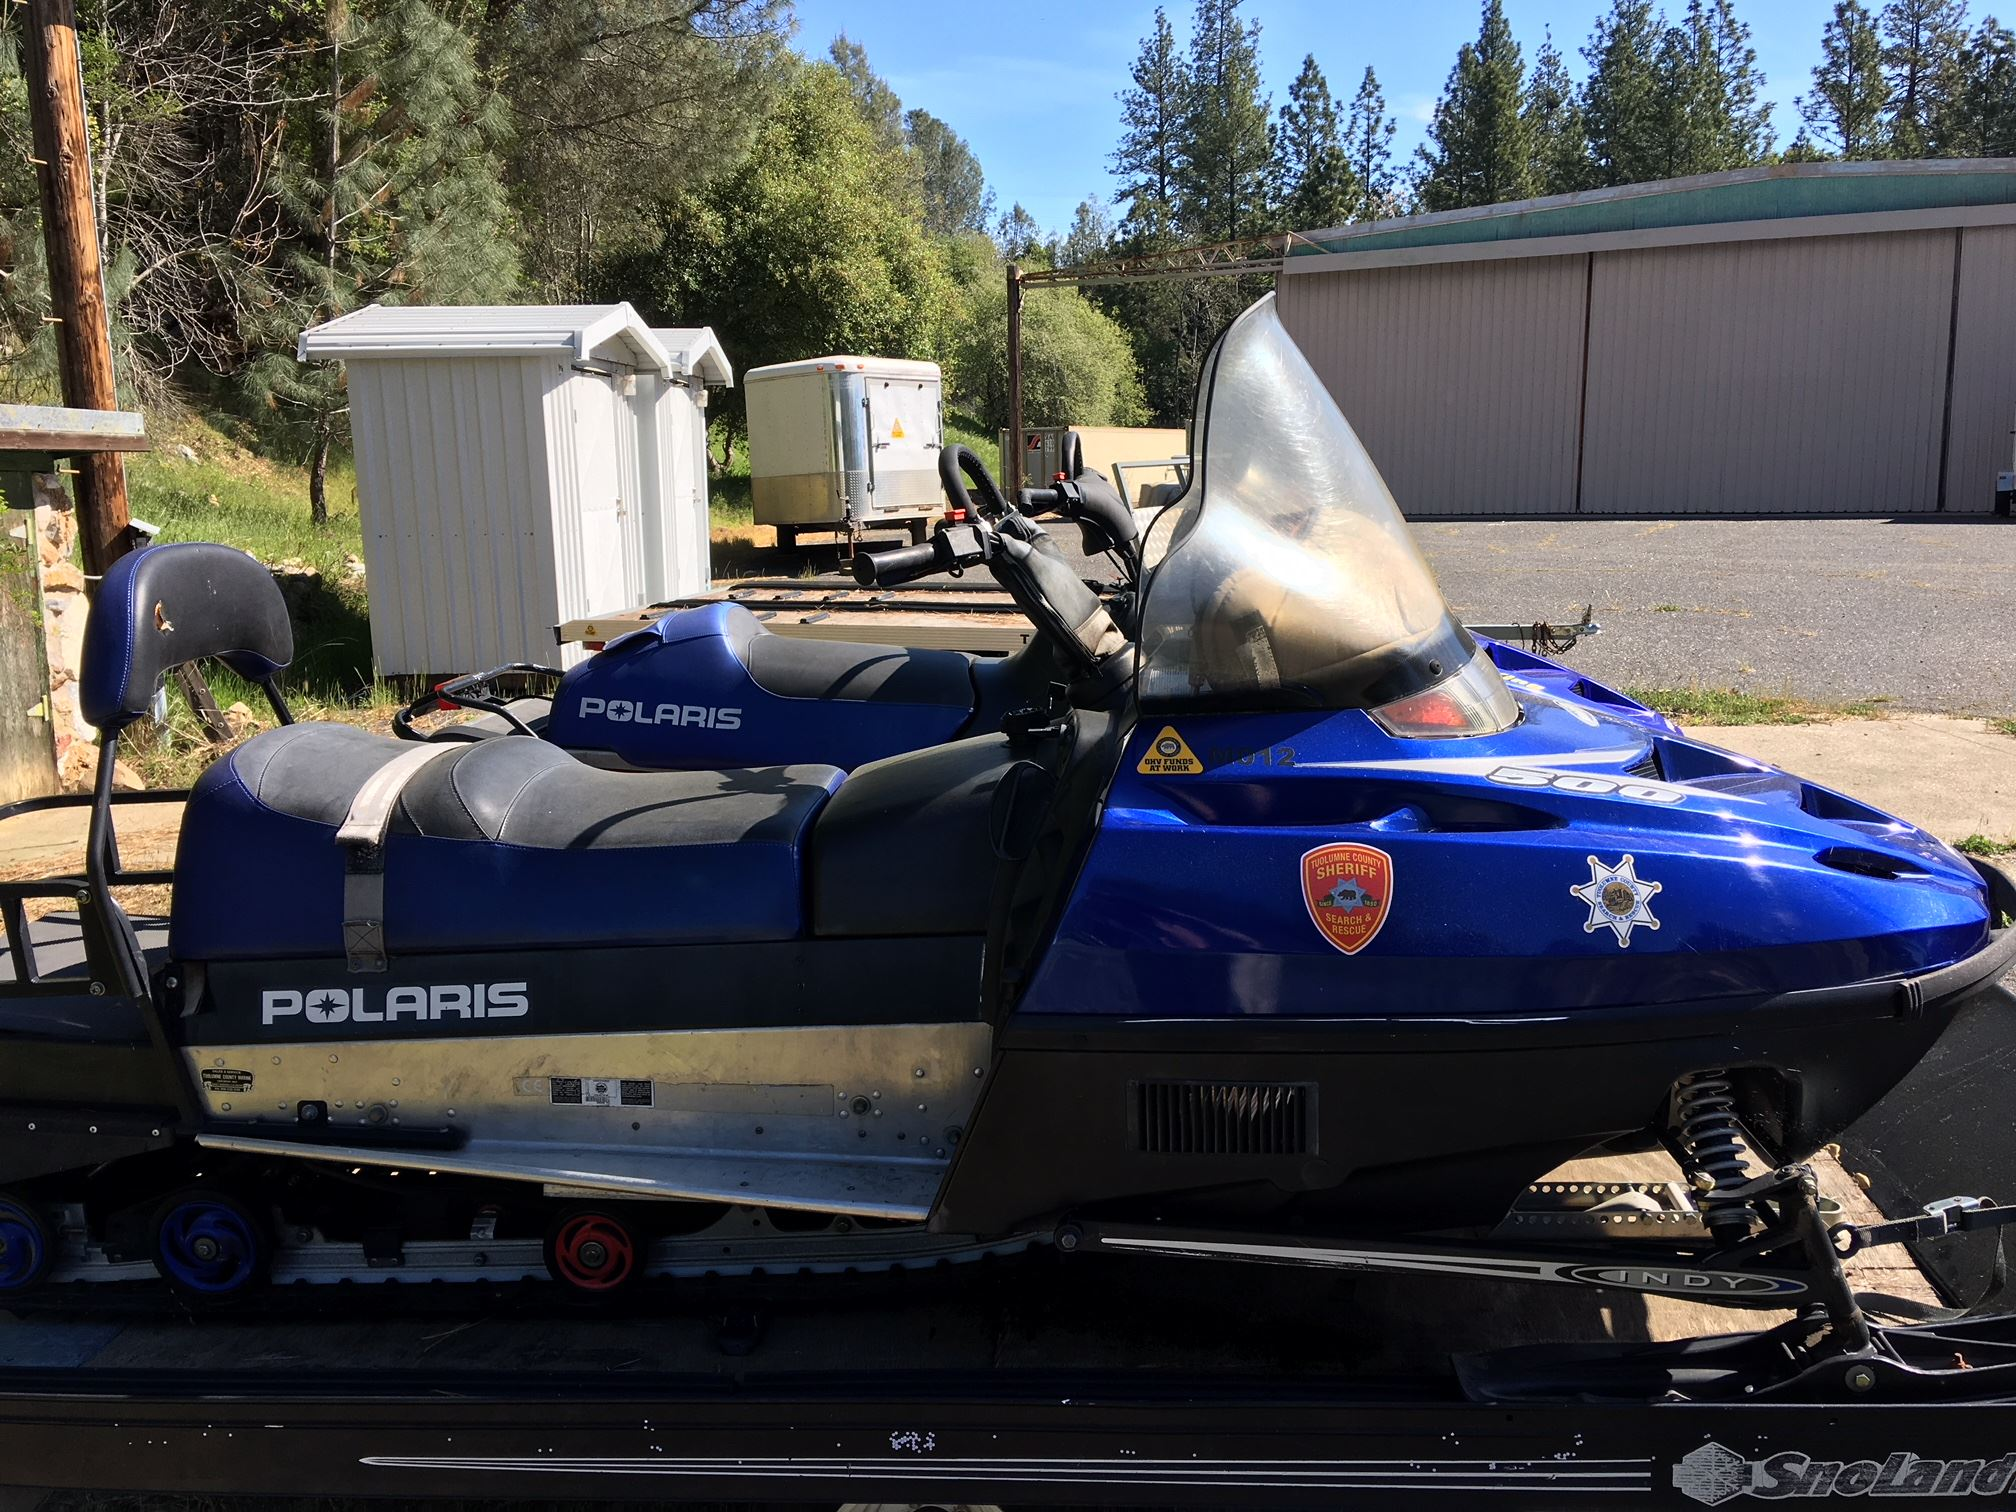 2001 Polaris 500 Snowmobile M012